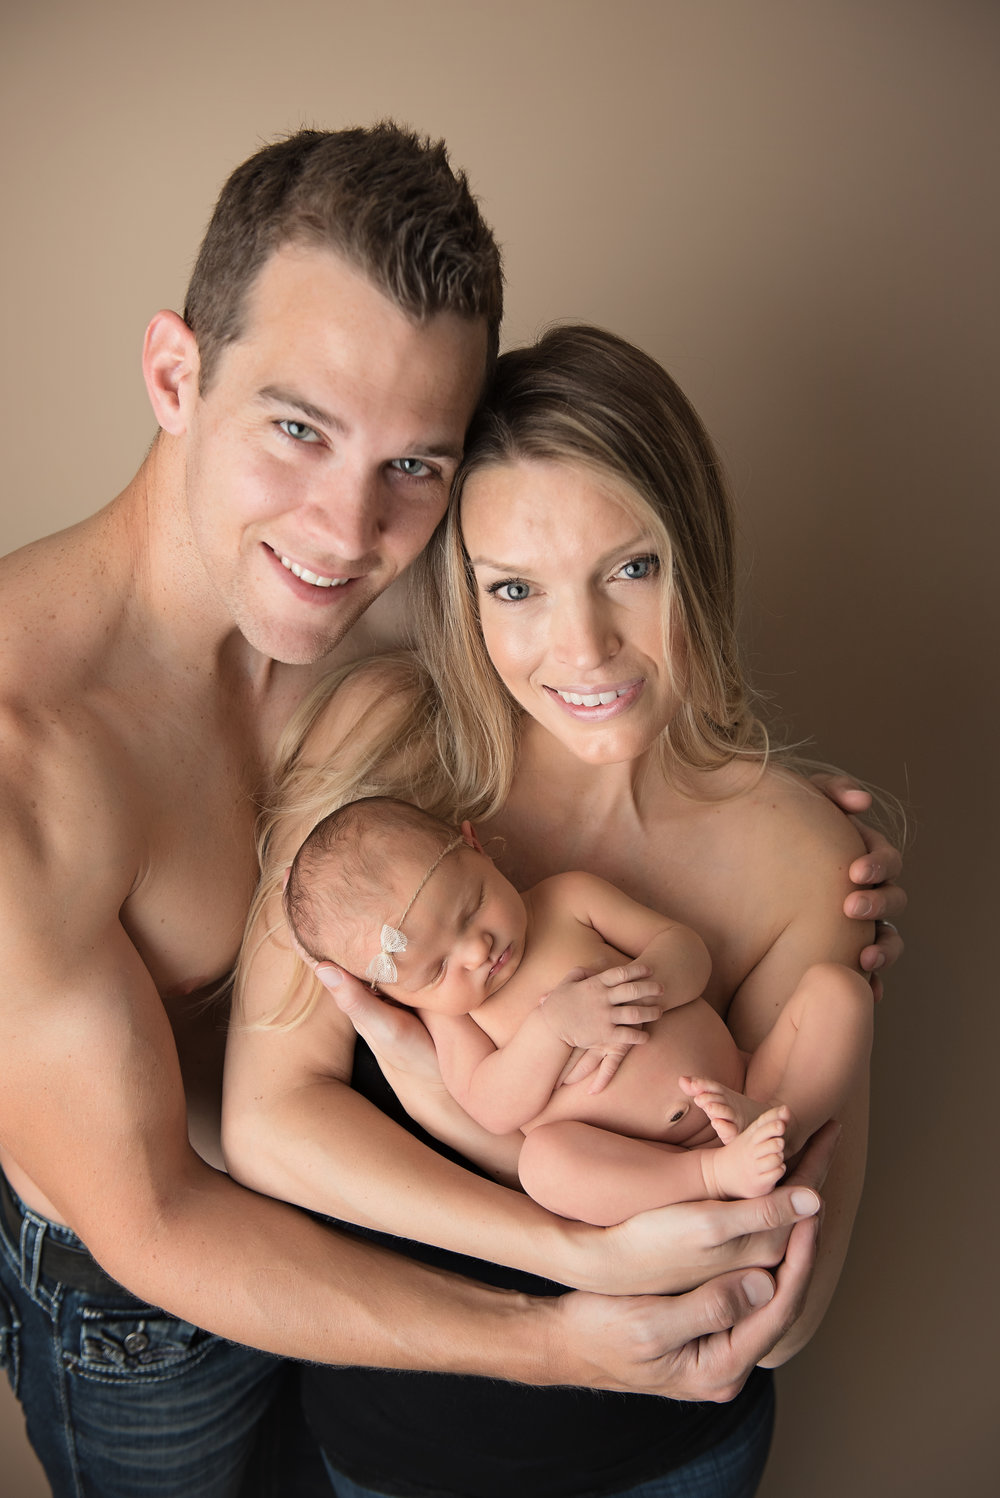 Lonsdale_Newborn_Photographer5.jpg